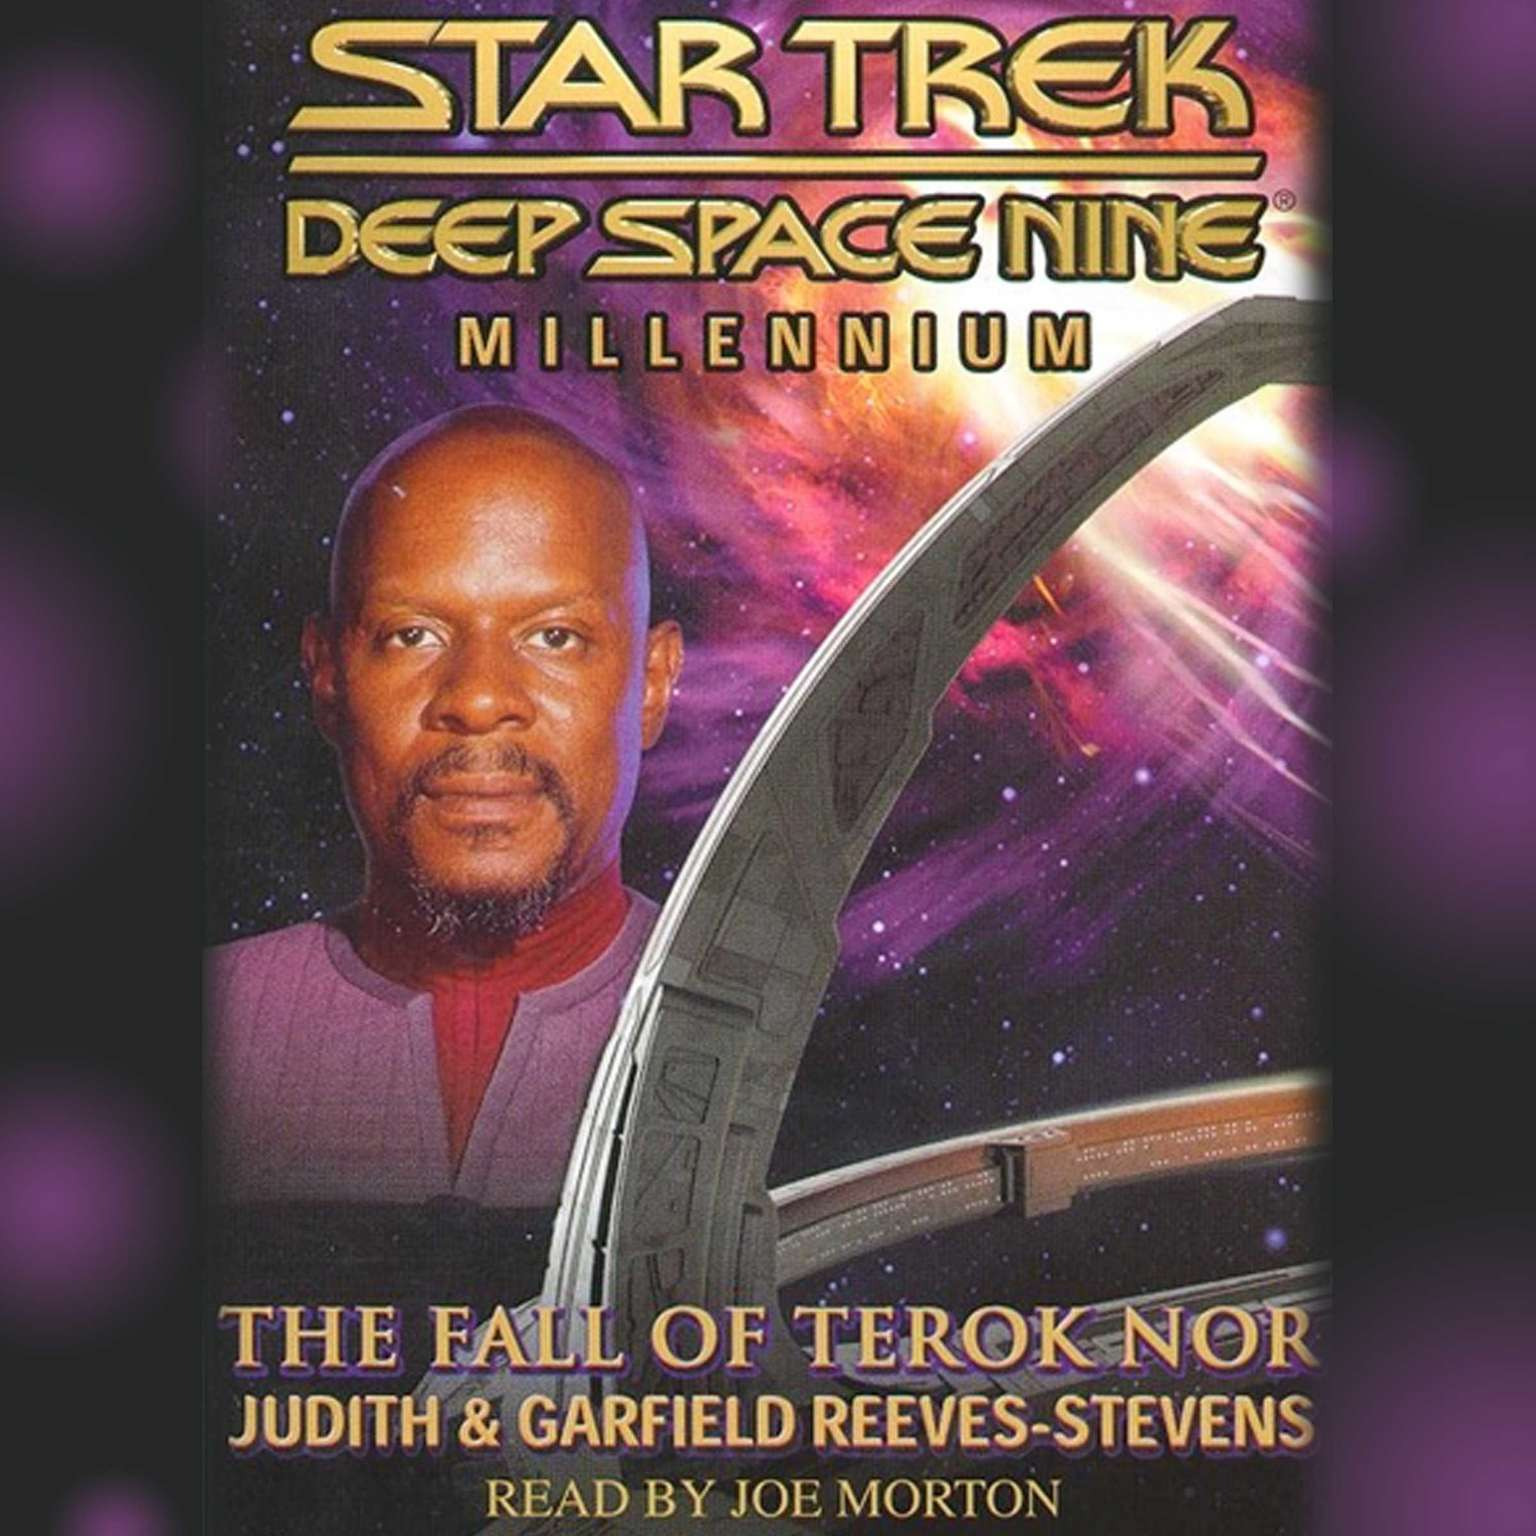 Printable Star Trek Deep Space 9: Millenium Audiobook Cover Art